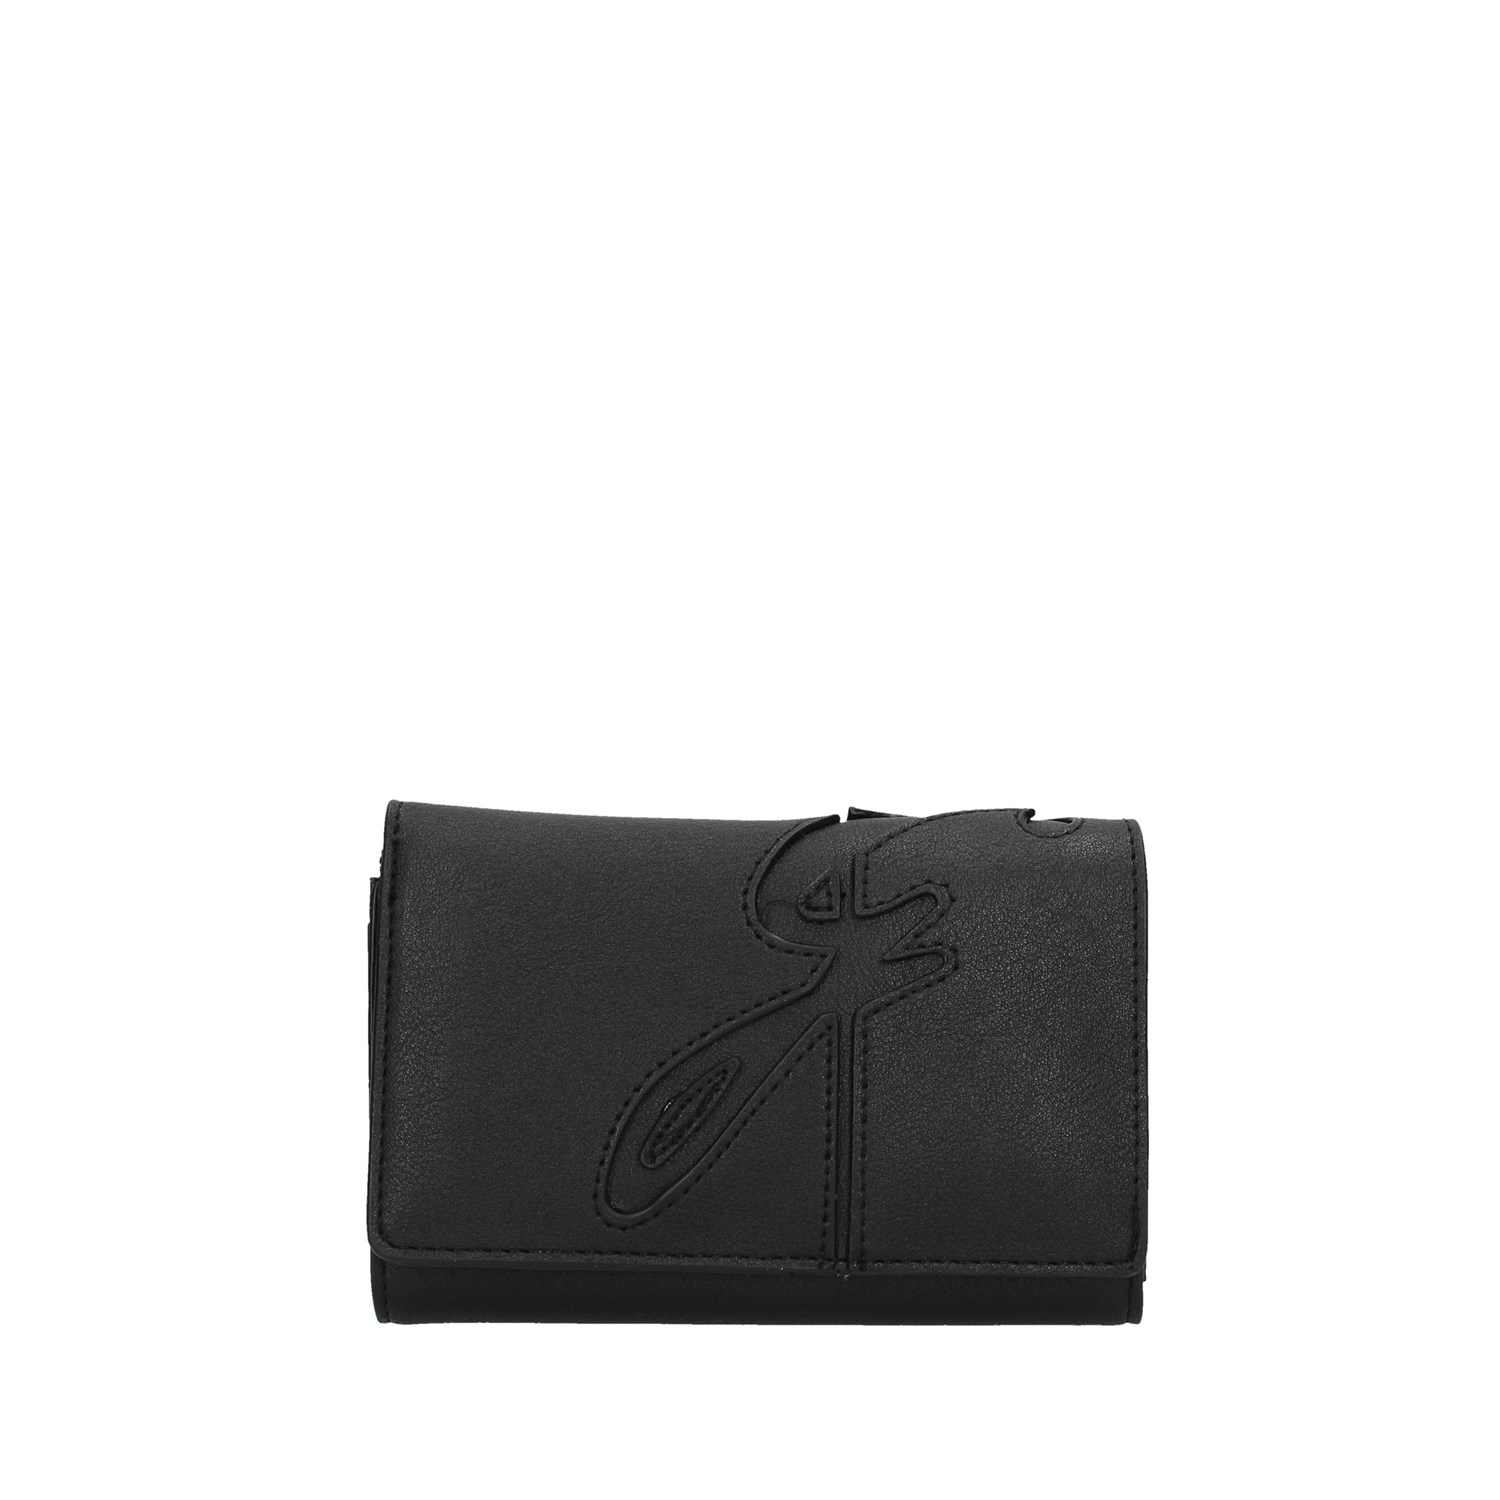 Gattinoni Roma Accessories Accessories Wallets BLACK BINUR7531WV